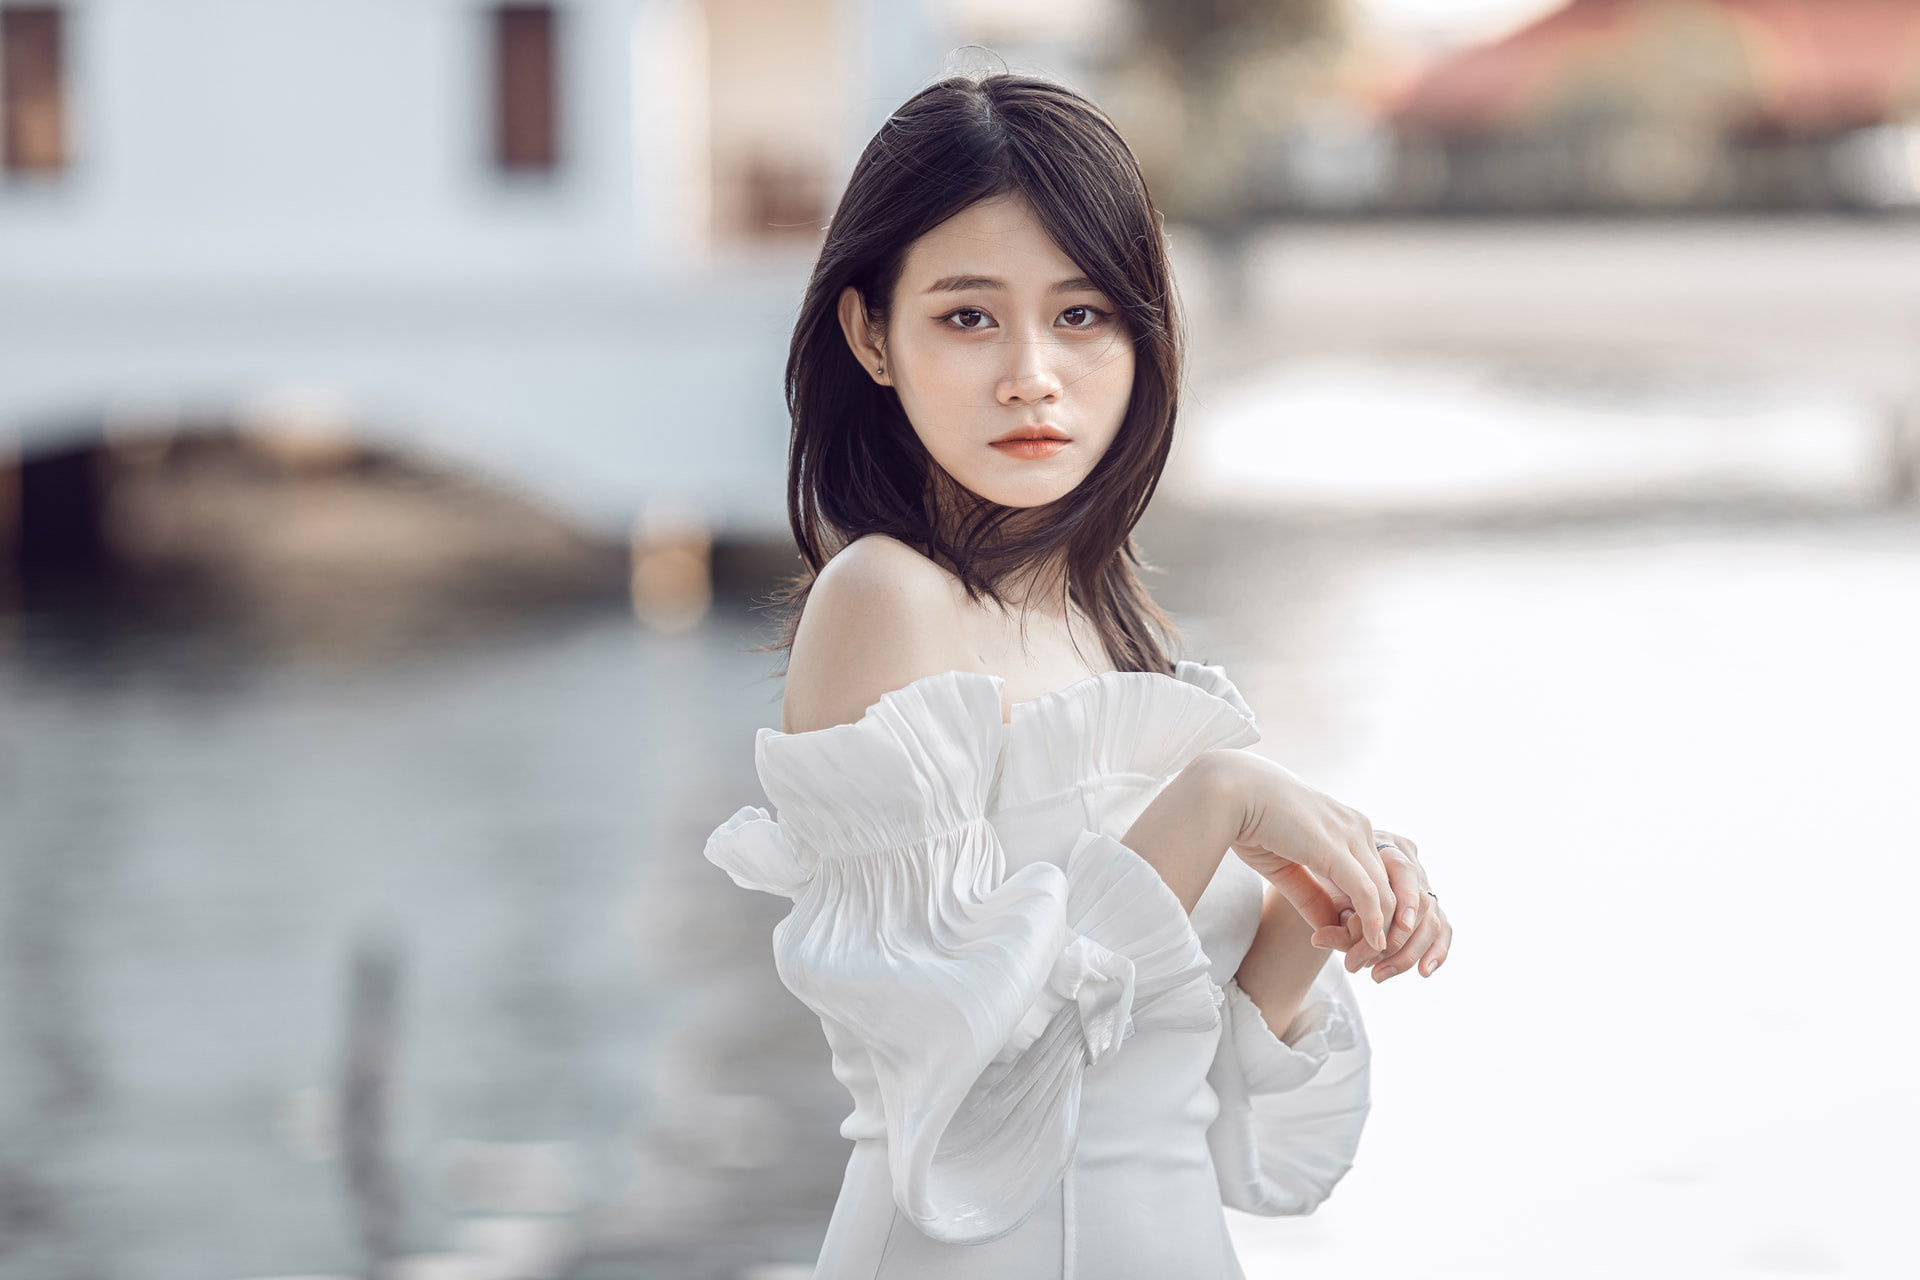 Asian girl in white dress